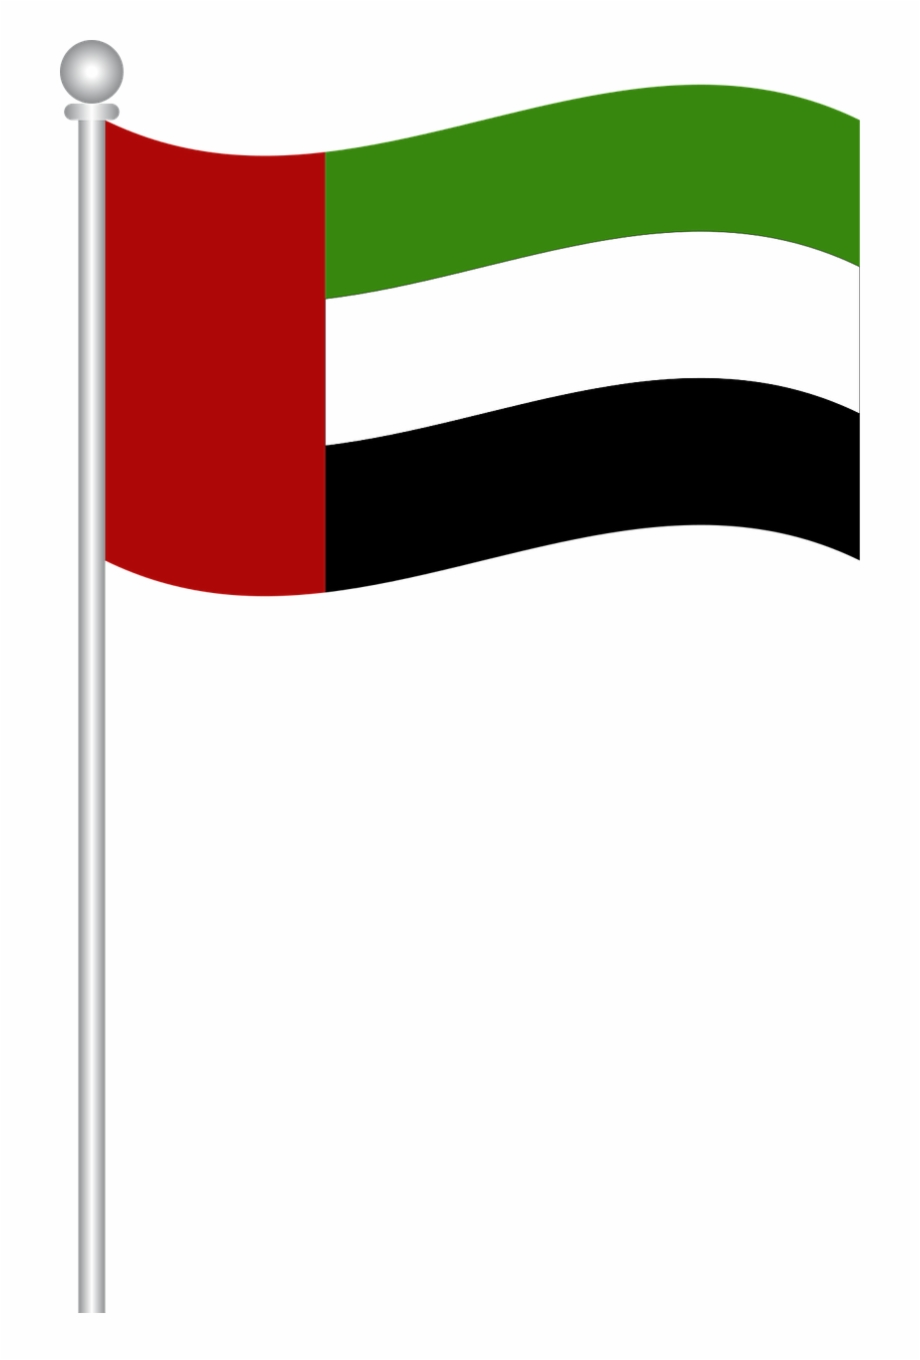 Flag Of Uae Flag Uae World Flags Png Image Transparent Dubai